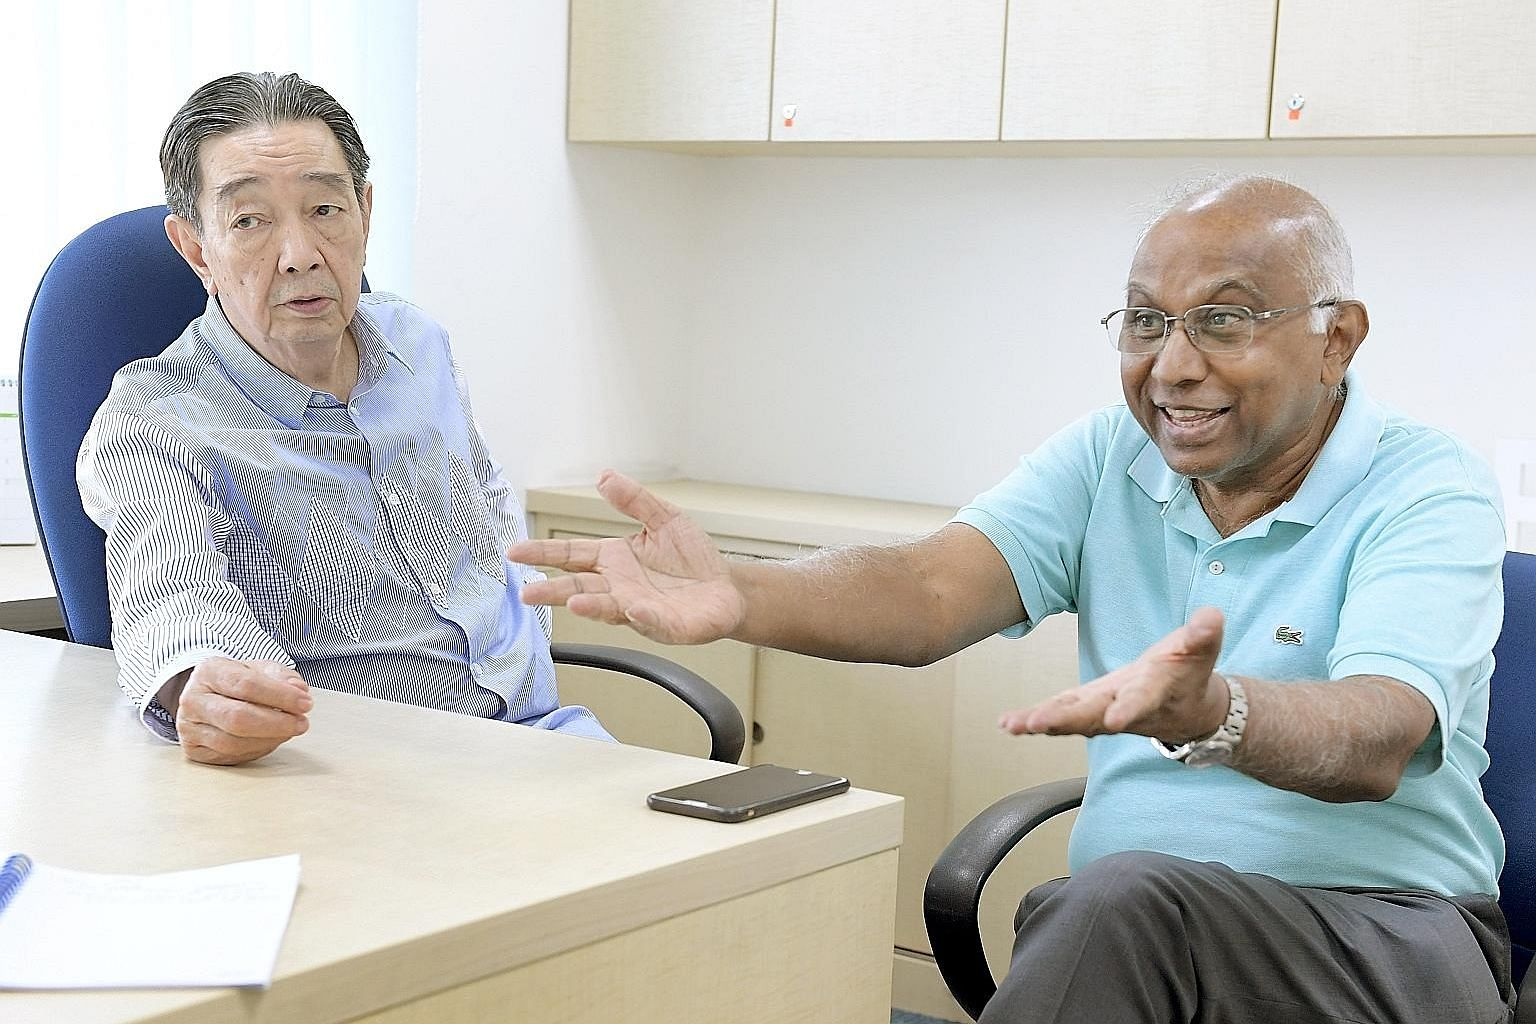 FAS vice-presidents Teo Hock Seng and S. Thavaneson are keen to canvass for opinions and ideas to reshape Singapore's only professional sports competition. One objective is to commercialise the S-League to reduce its dependence on jackpot rooms as it